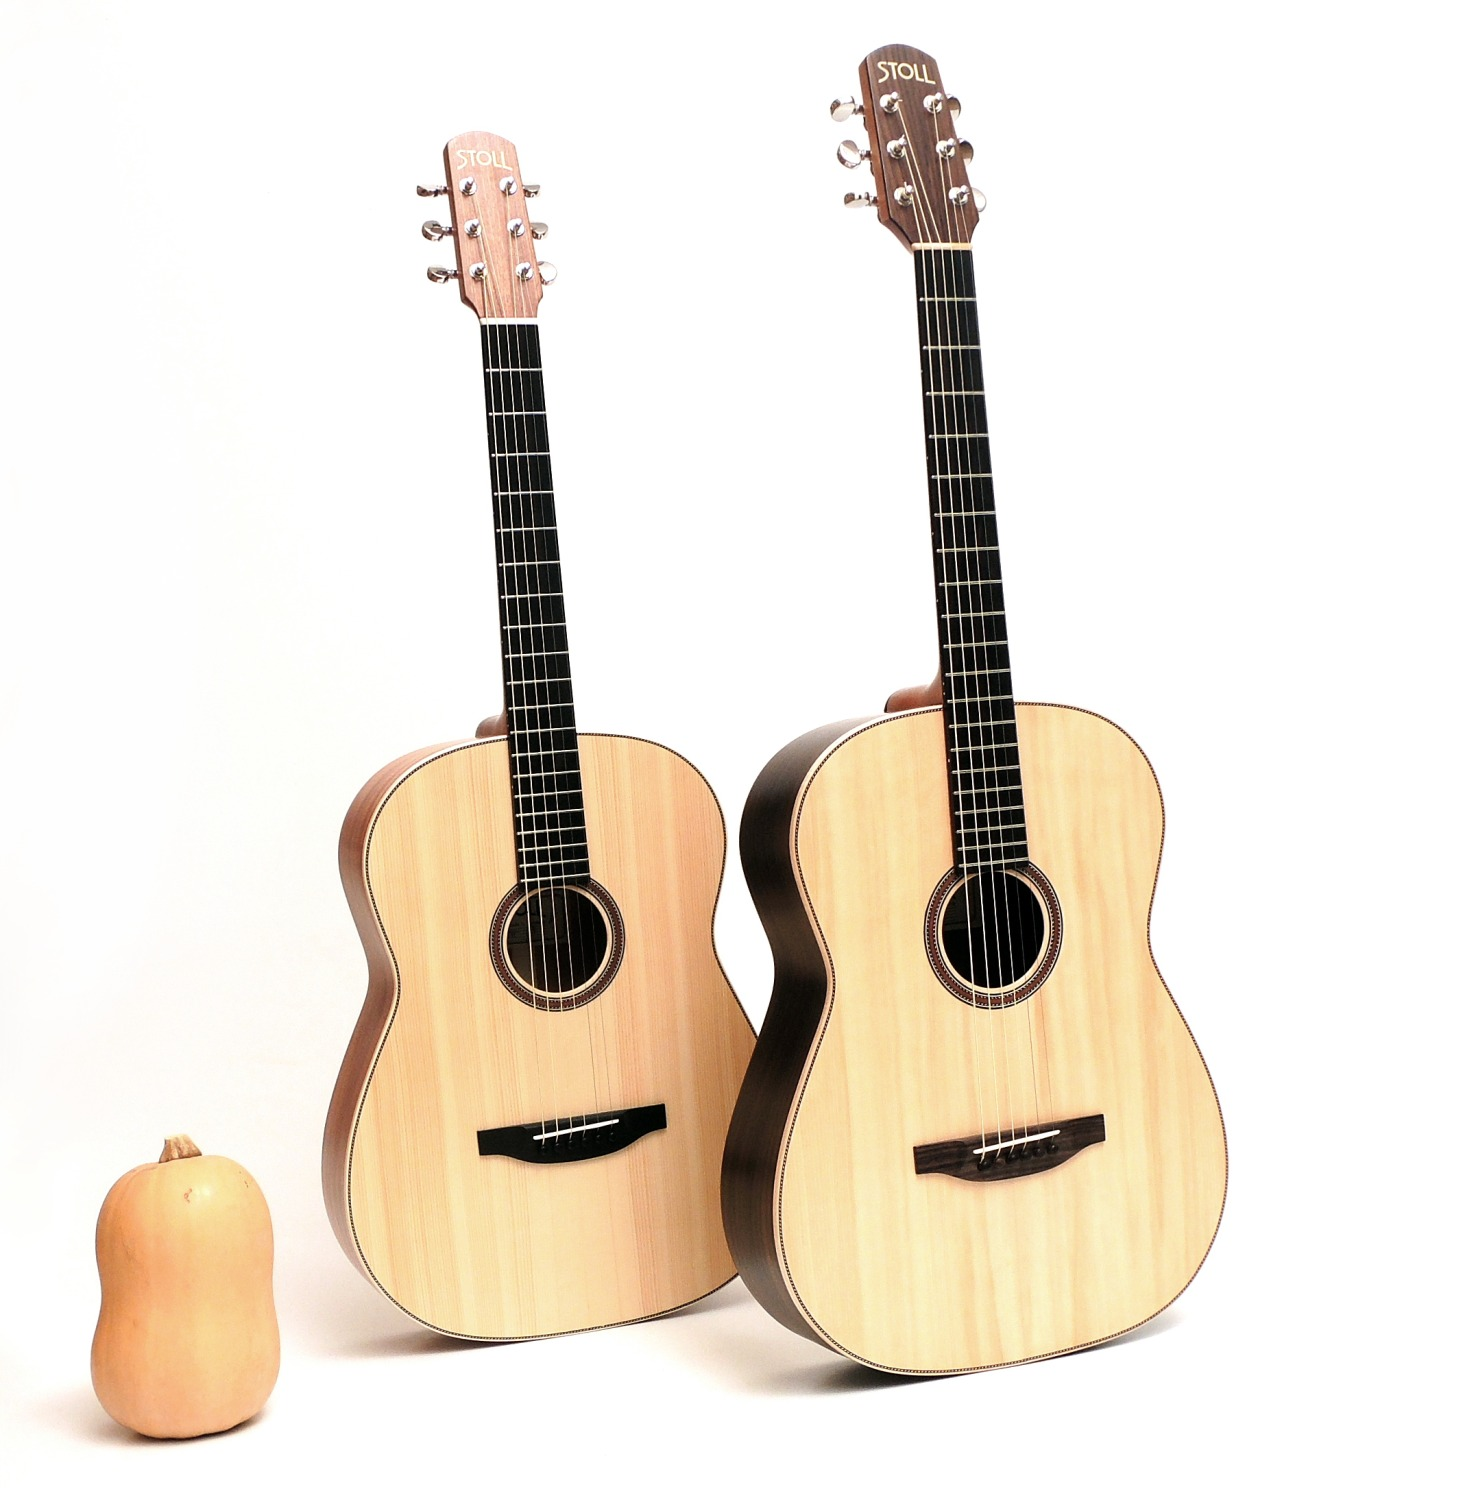 pt butternought 12 fret guitar with small body stoll guitars. Black Bedroom Furniture Sets. Home Design Ideas